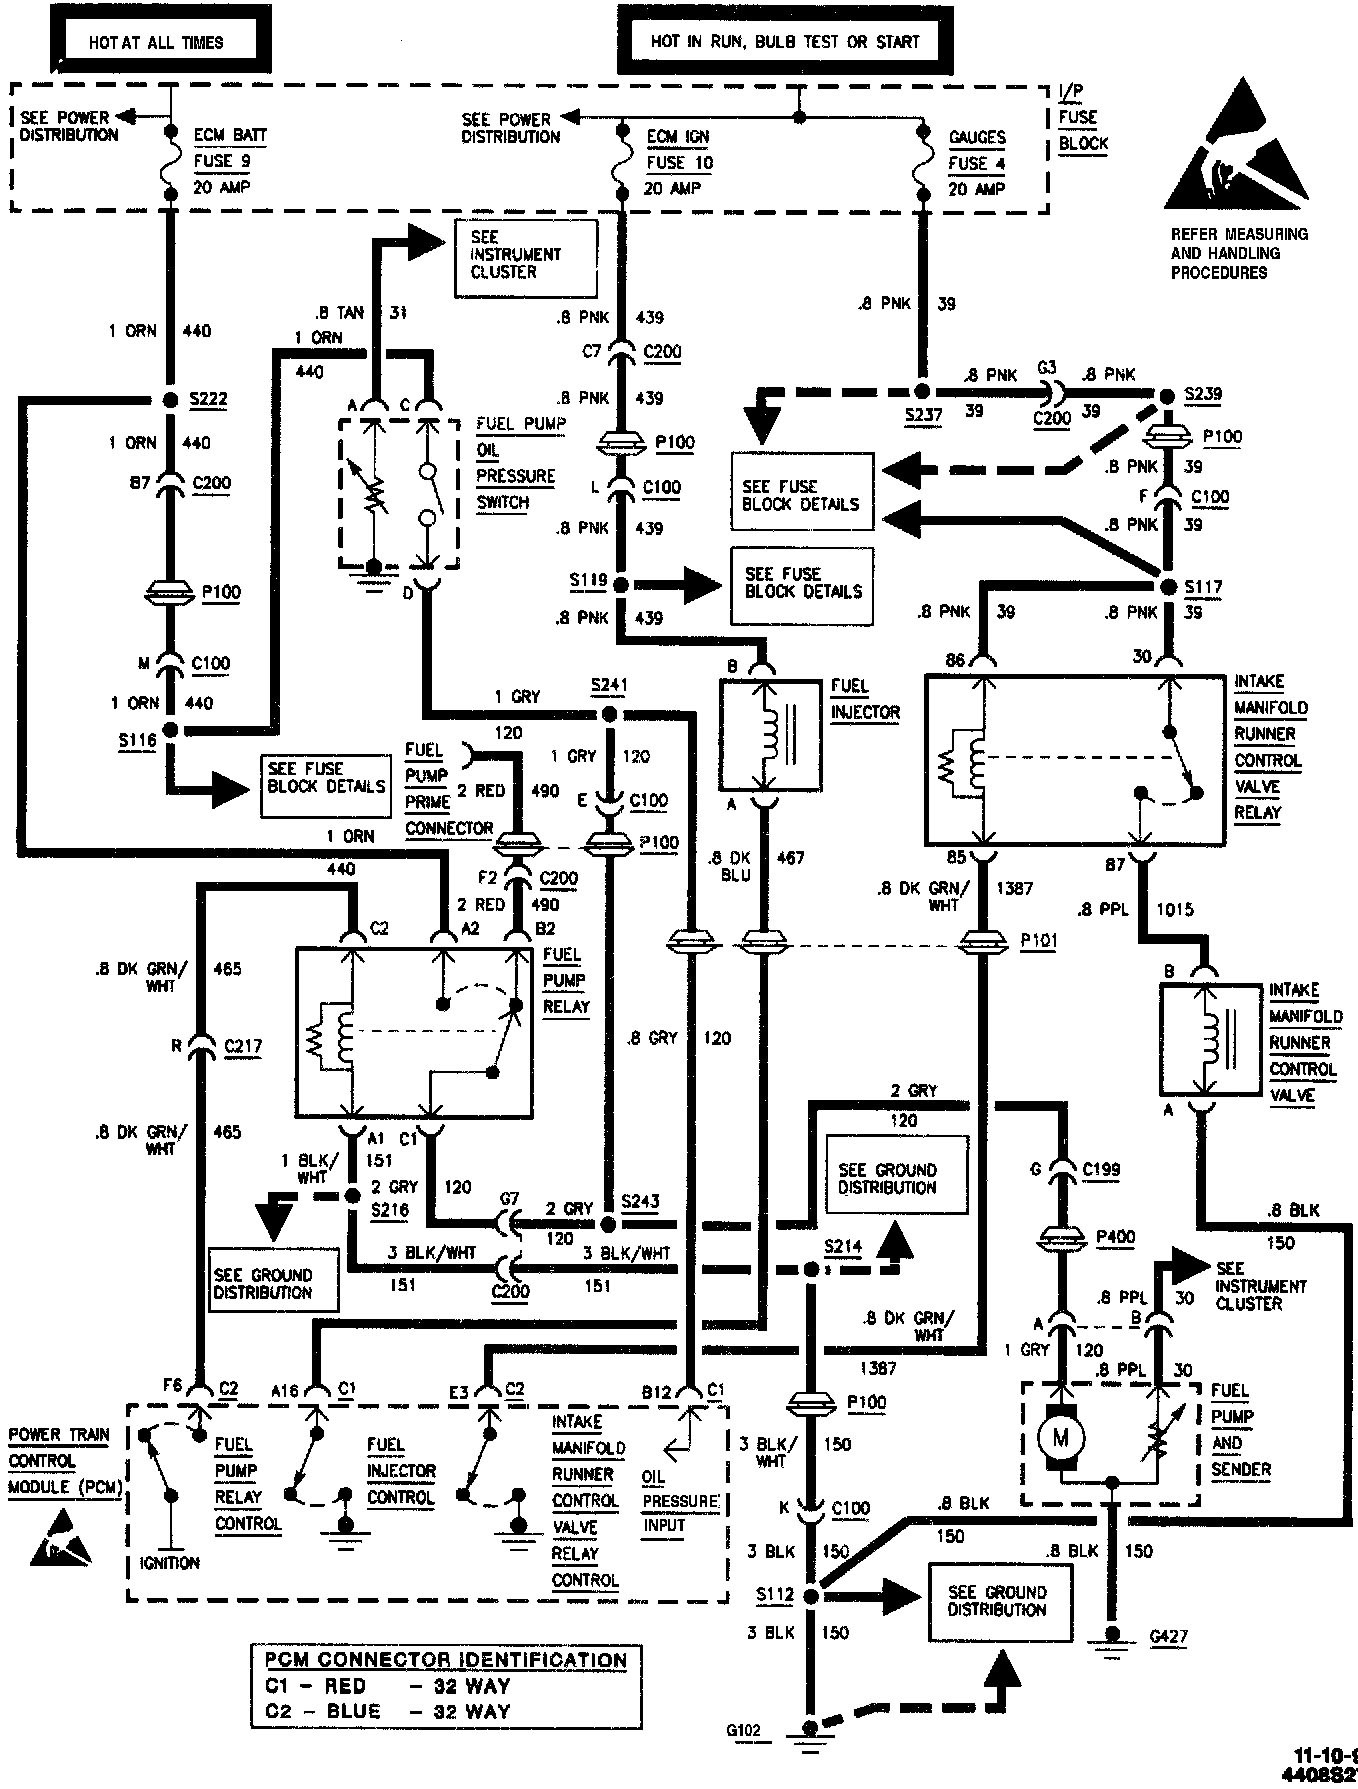 Pollak Wiring Diagram Pollak Circuit Diagrams